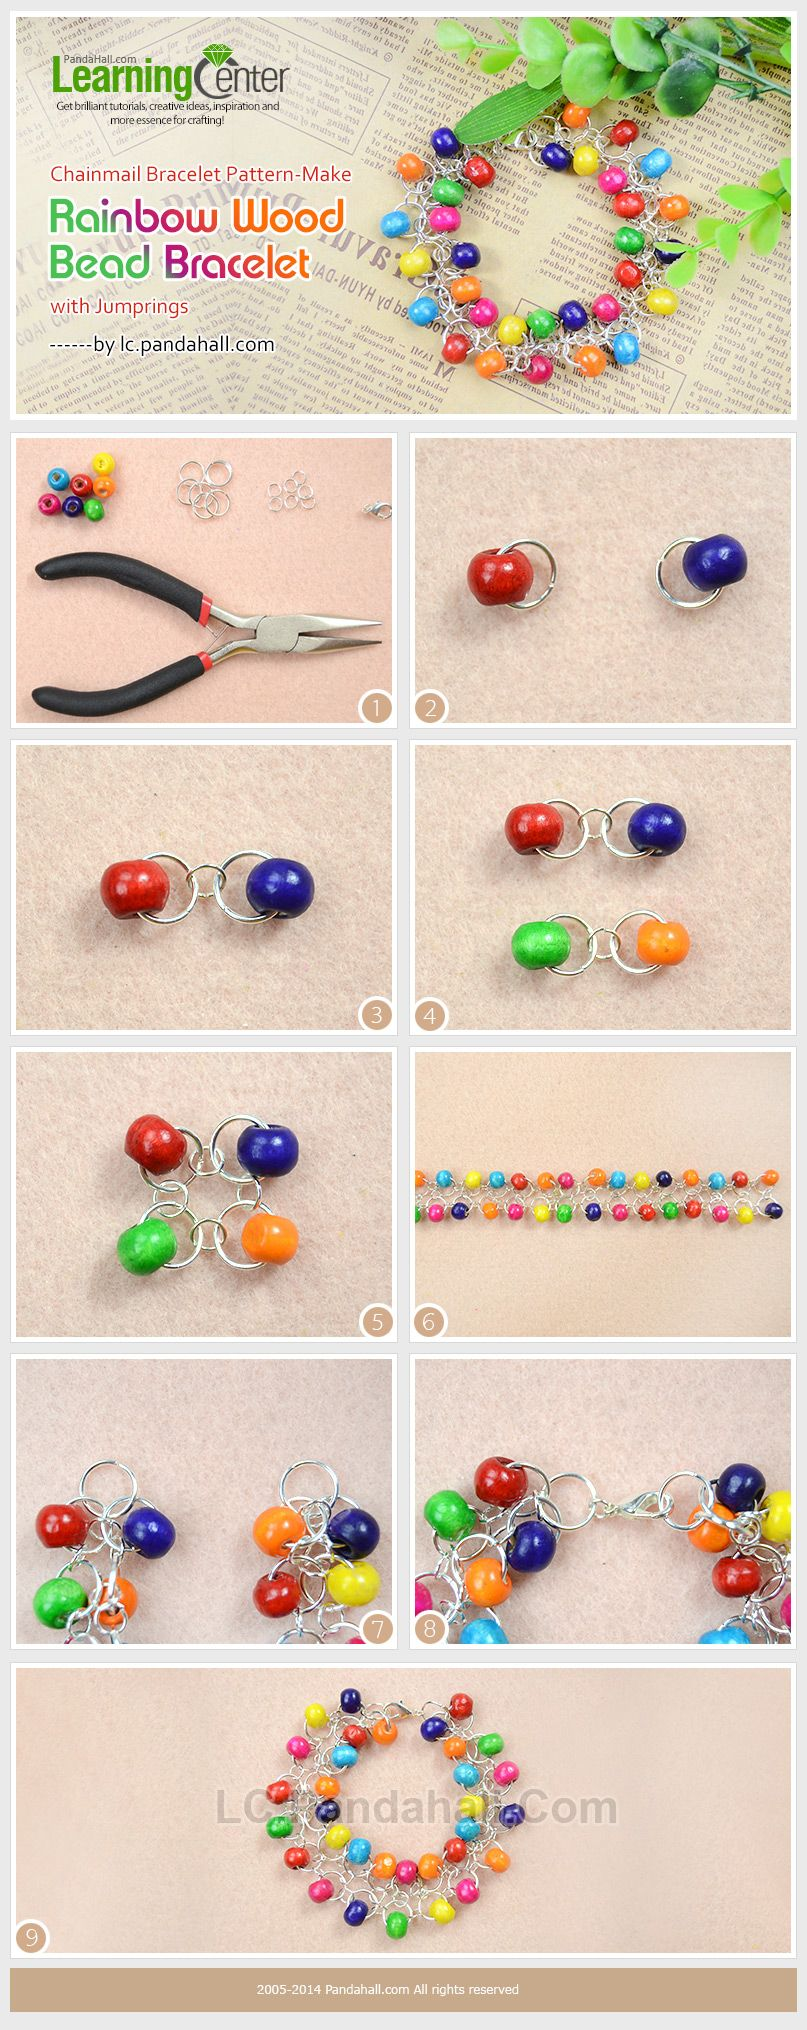 Chainmail Bracelet Pattern-Make Rainbow Wood Bead Bracelet with Jumprings